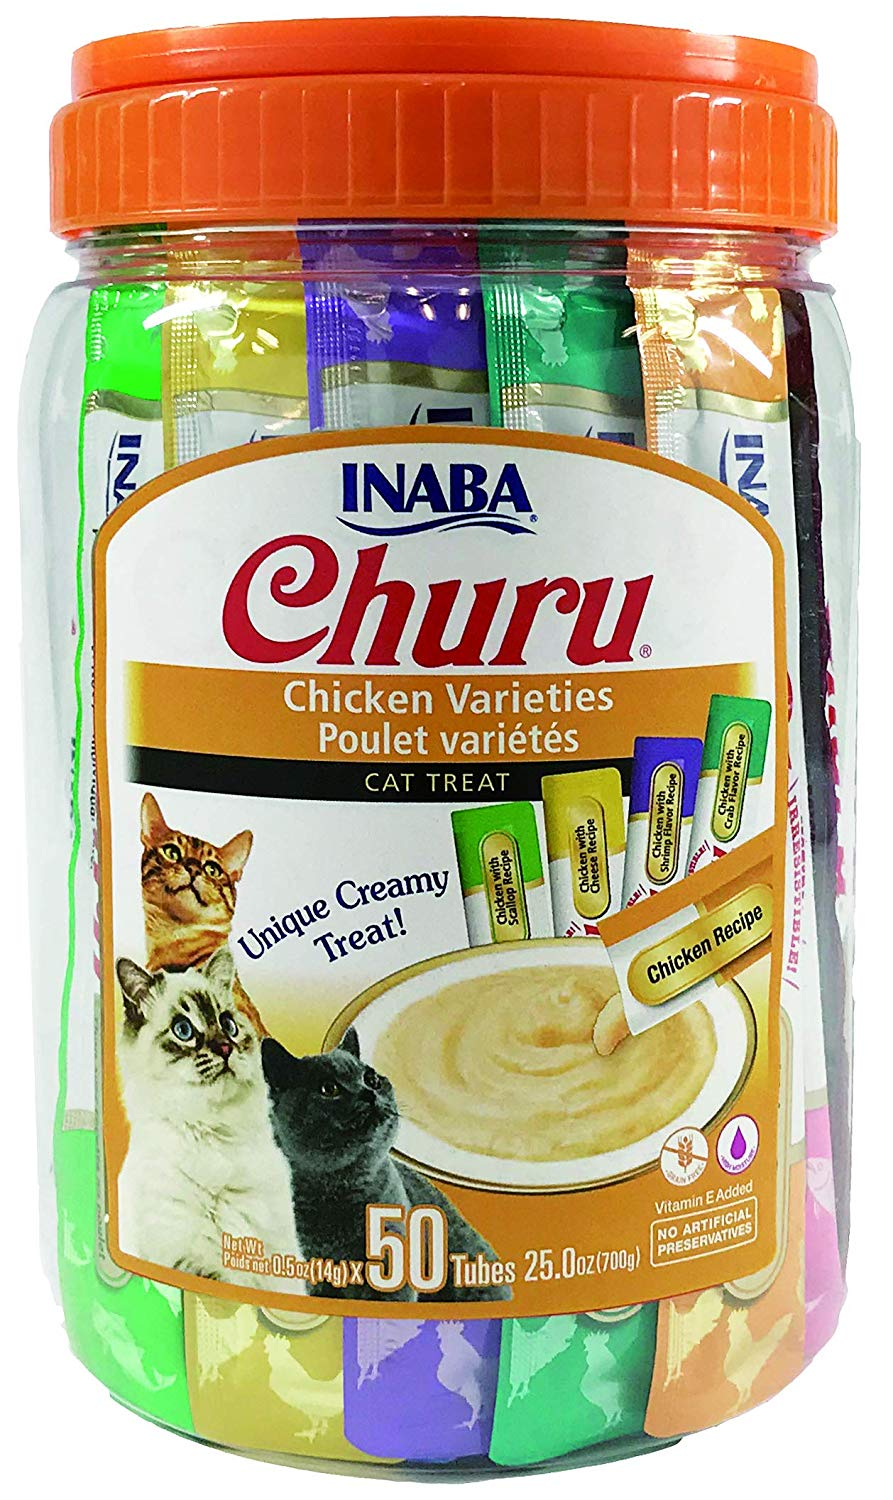 Inaba Churu Purées Variety Pack Chicken Recipes